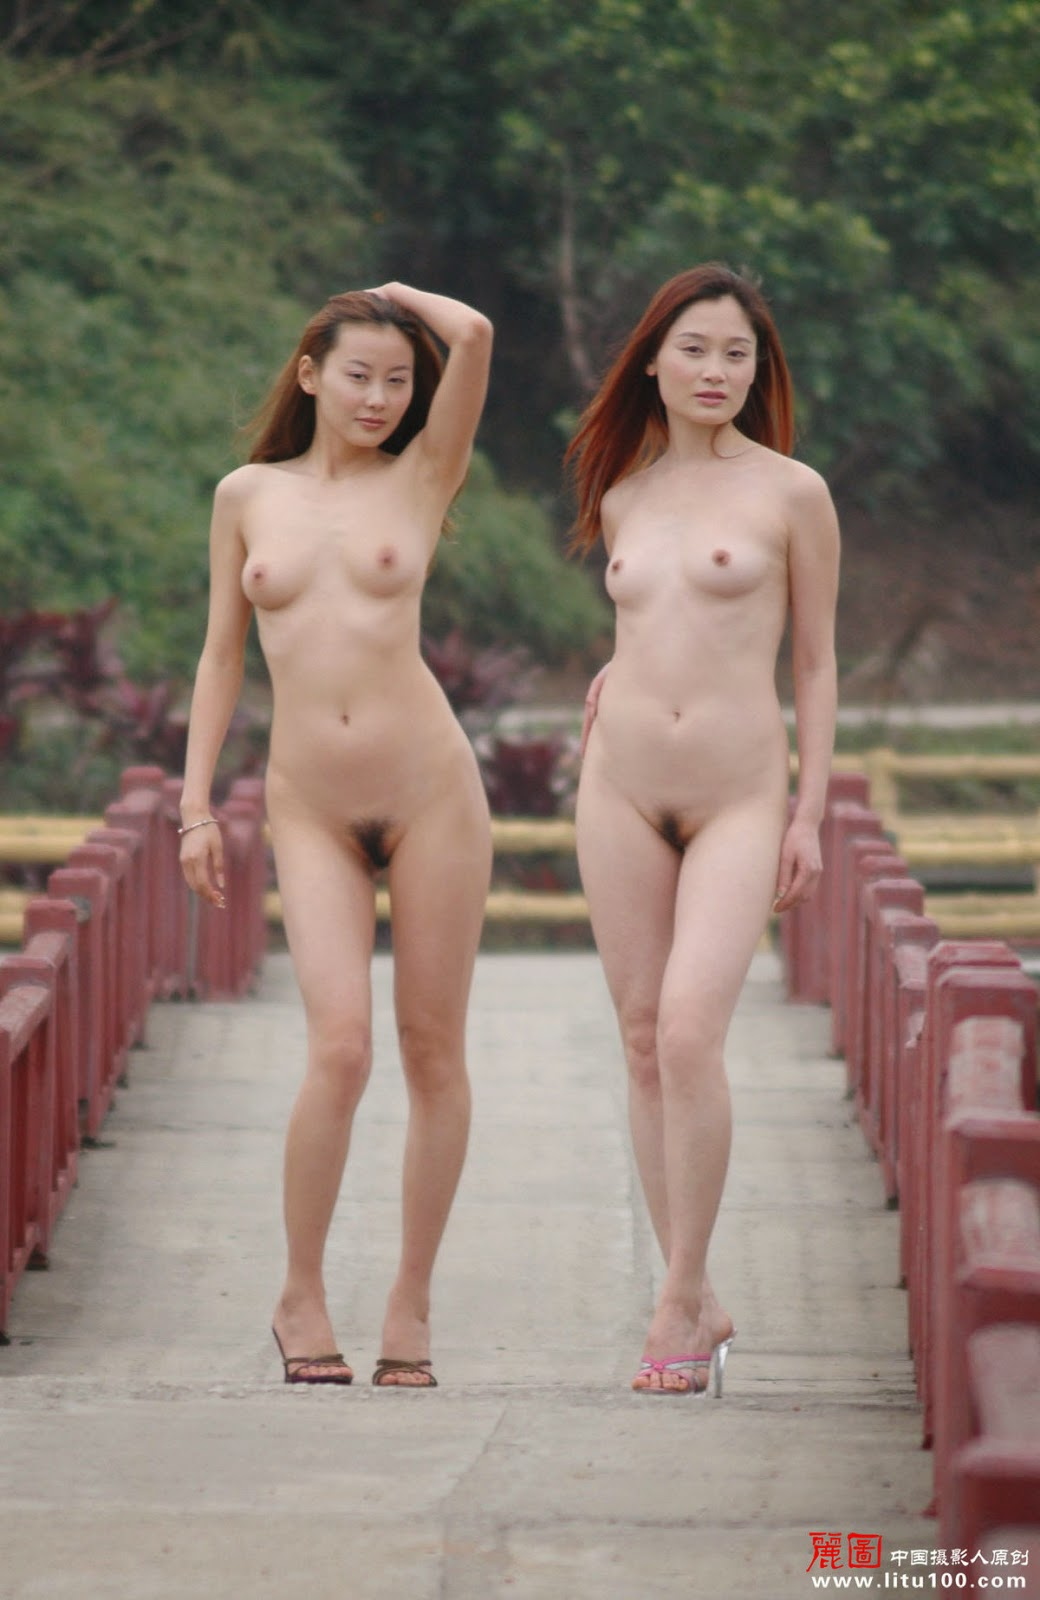 Perfect vietnamese nude picture